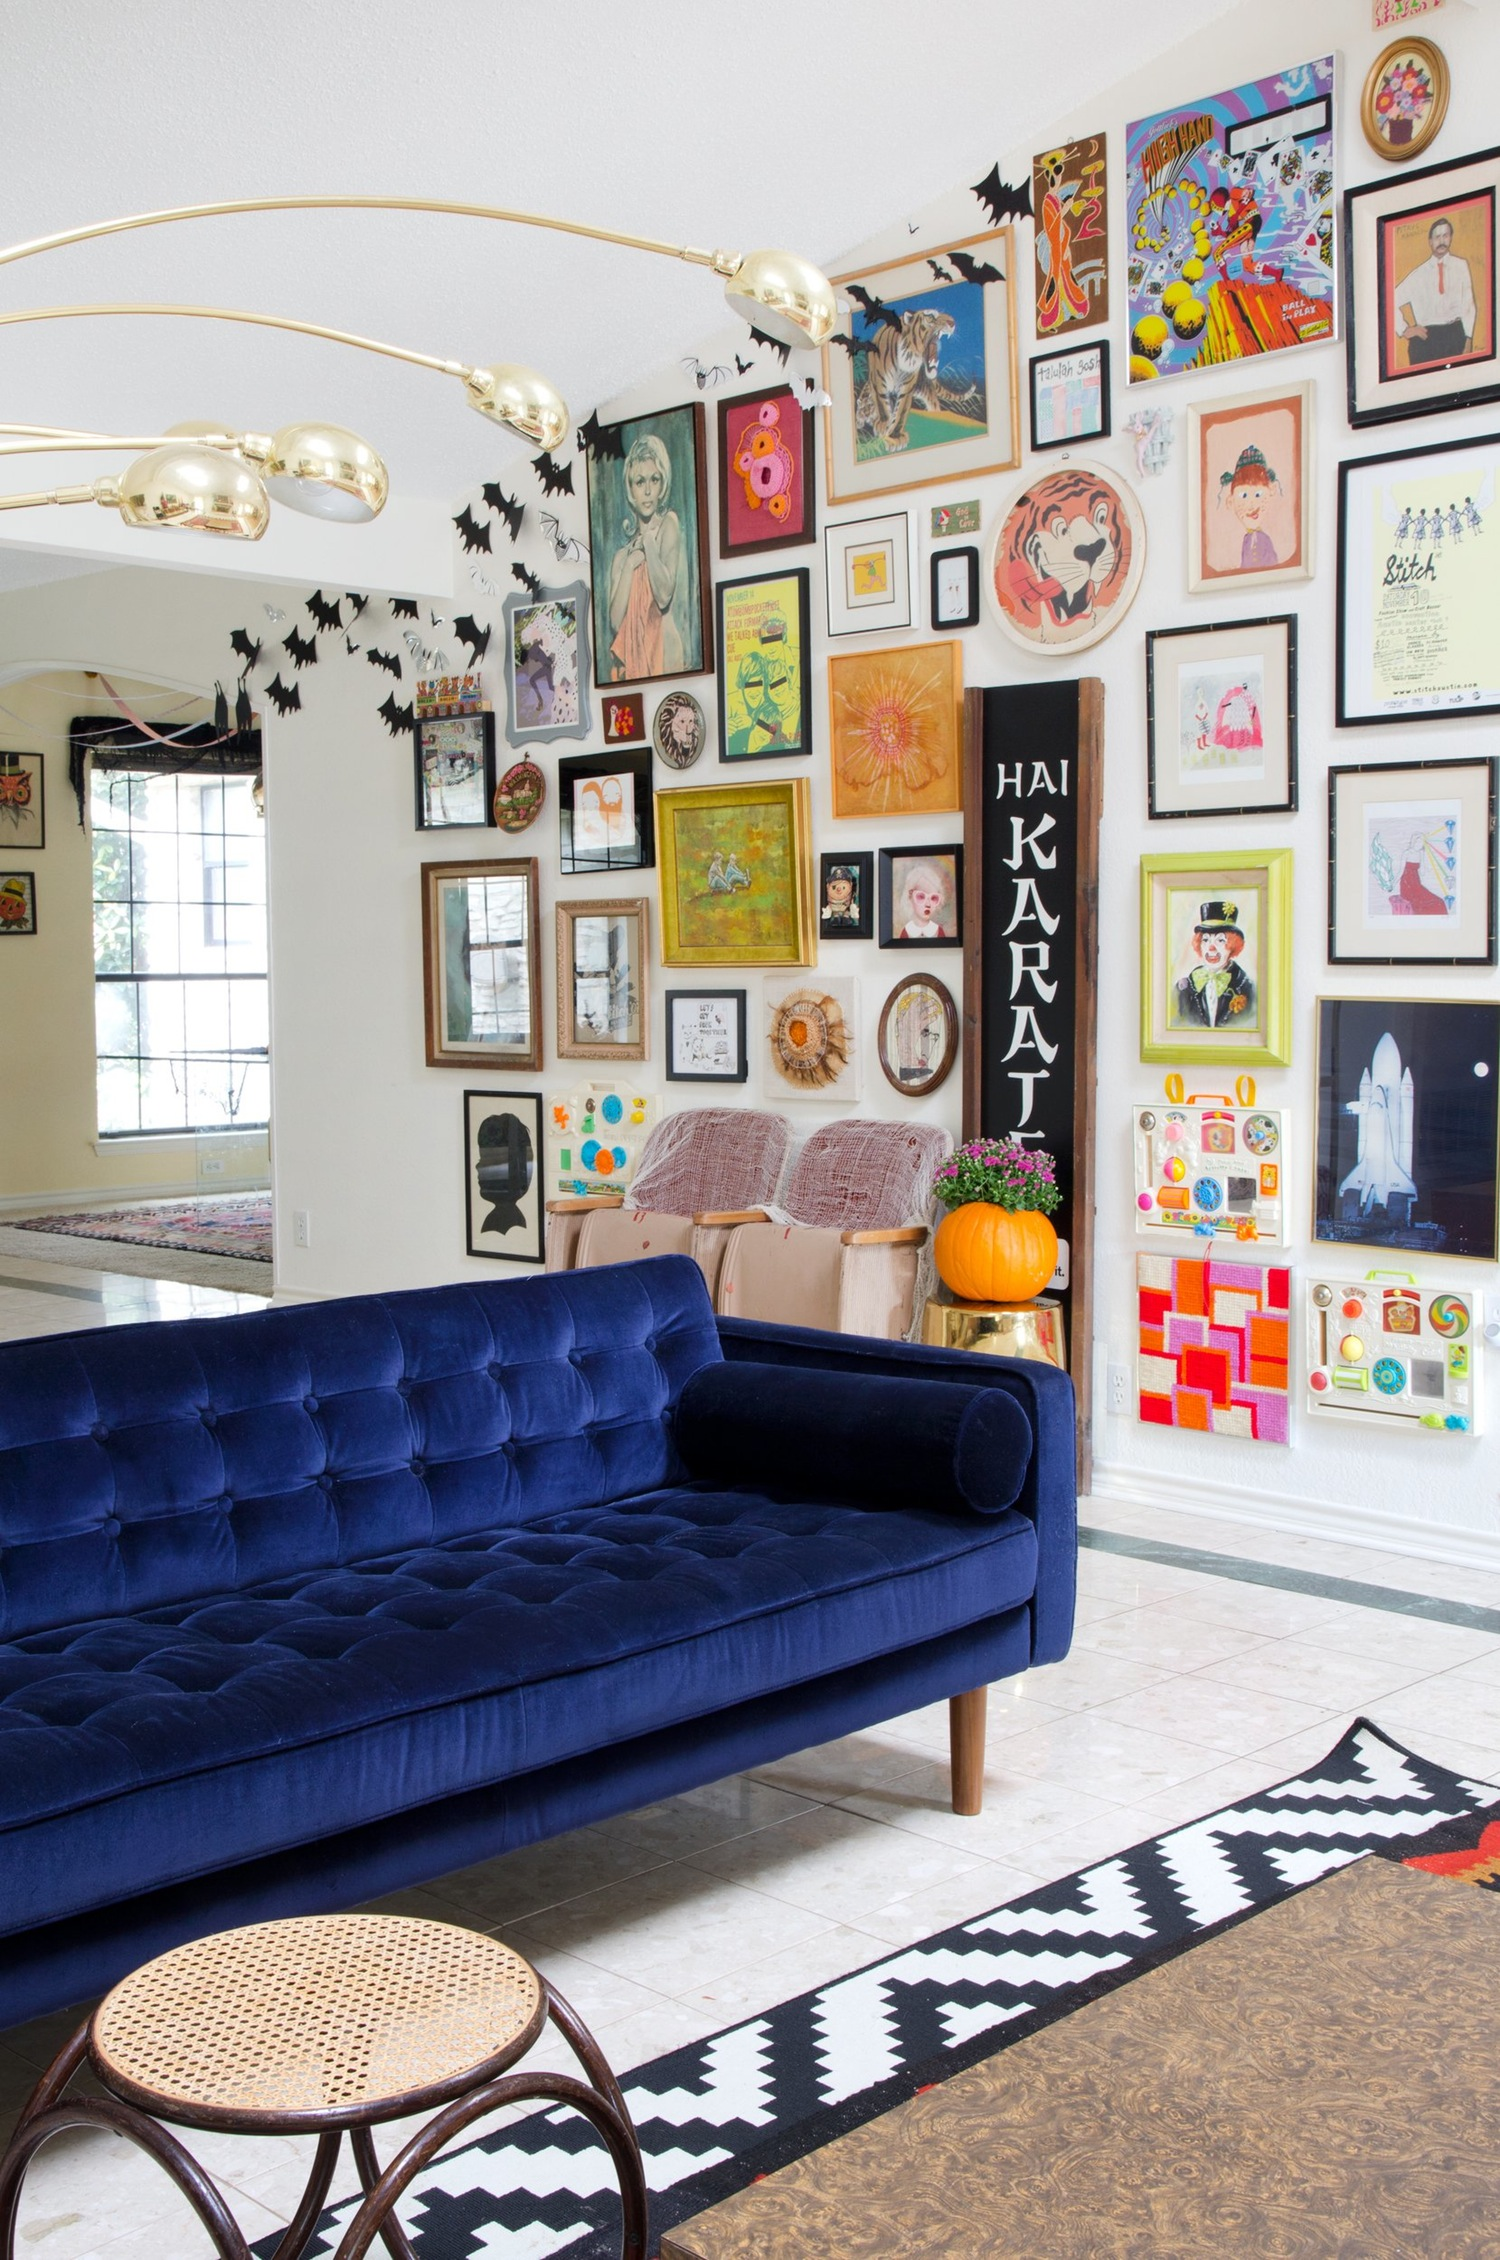 apartment sized furniture living room decorating ideas colour schemes 25 stunning rooms with blue velvet sofas sofa a bright and colorful gallery wall therapy